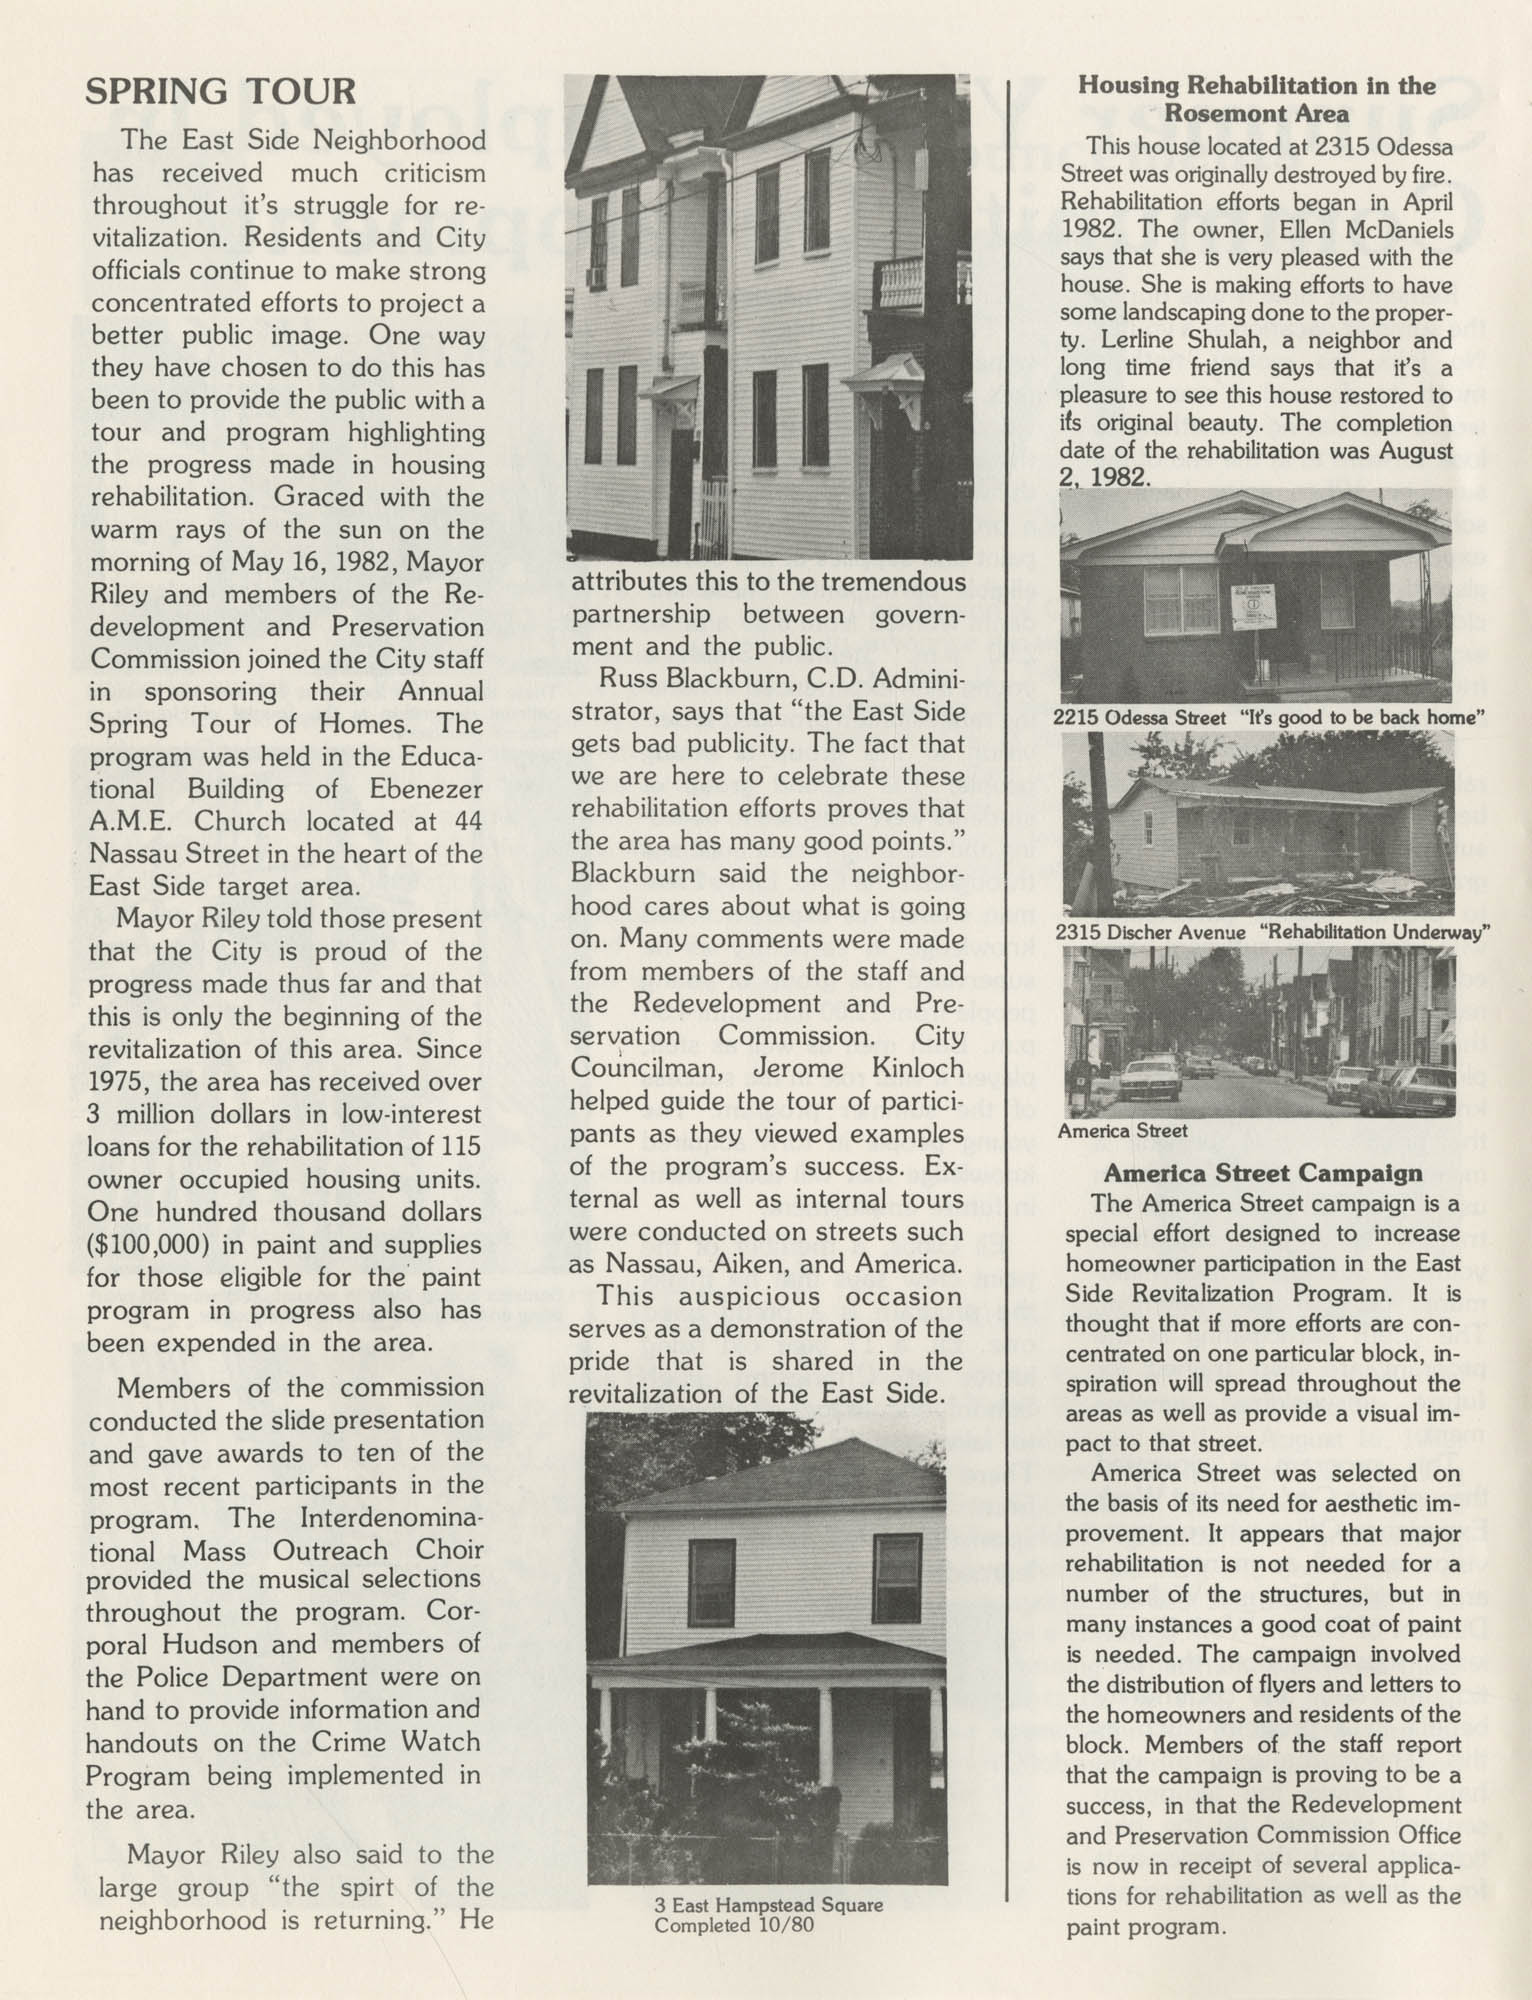 C. D. Newsletter, A City of Charleston Community Development Publication, Summer Issue - 1982, Page 4